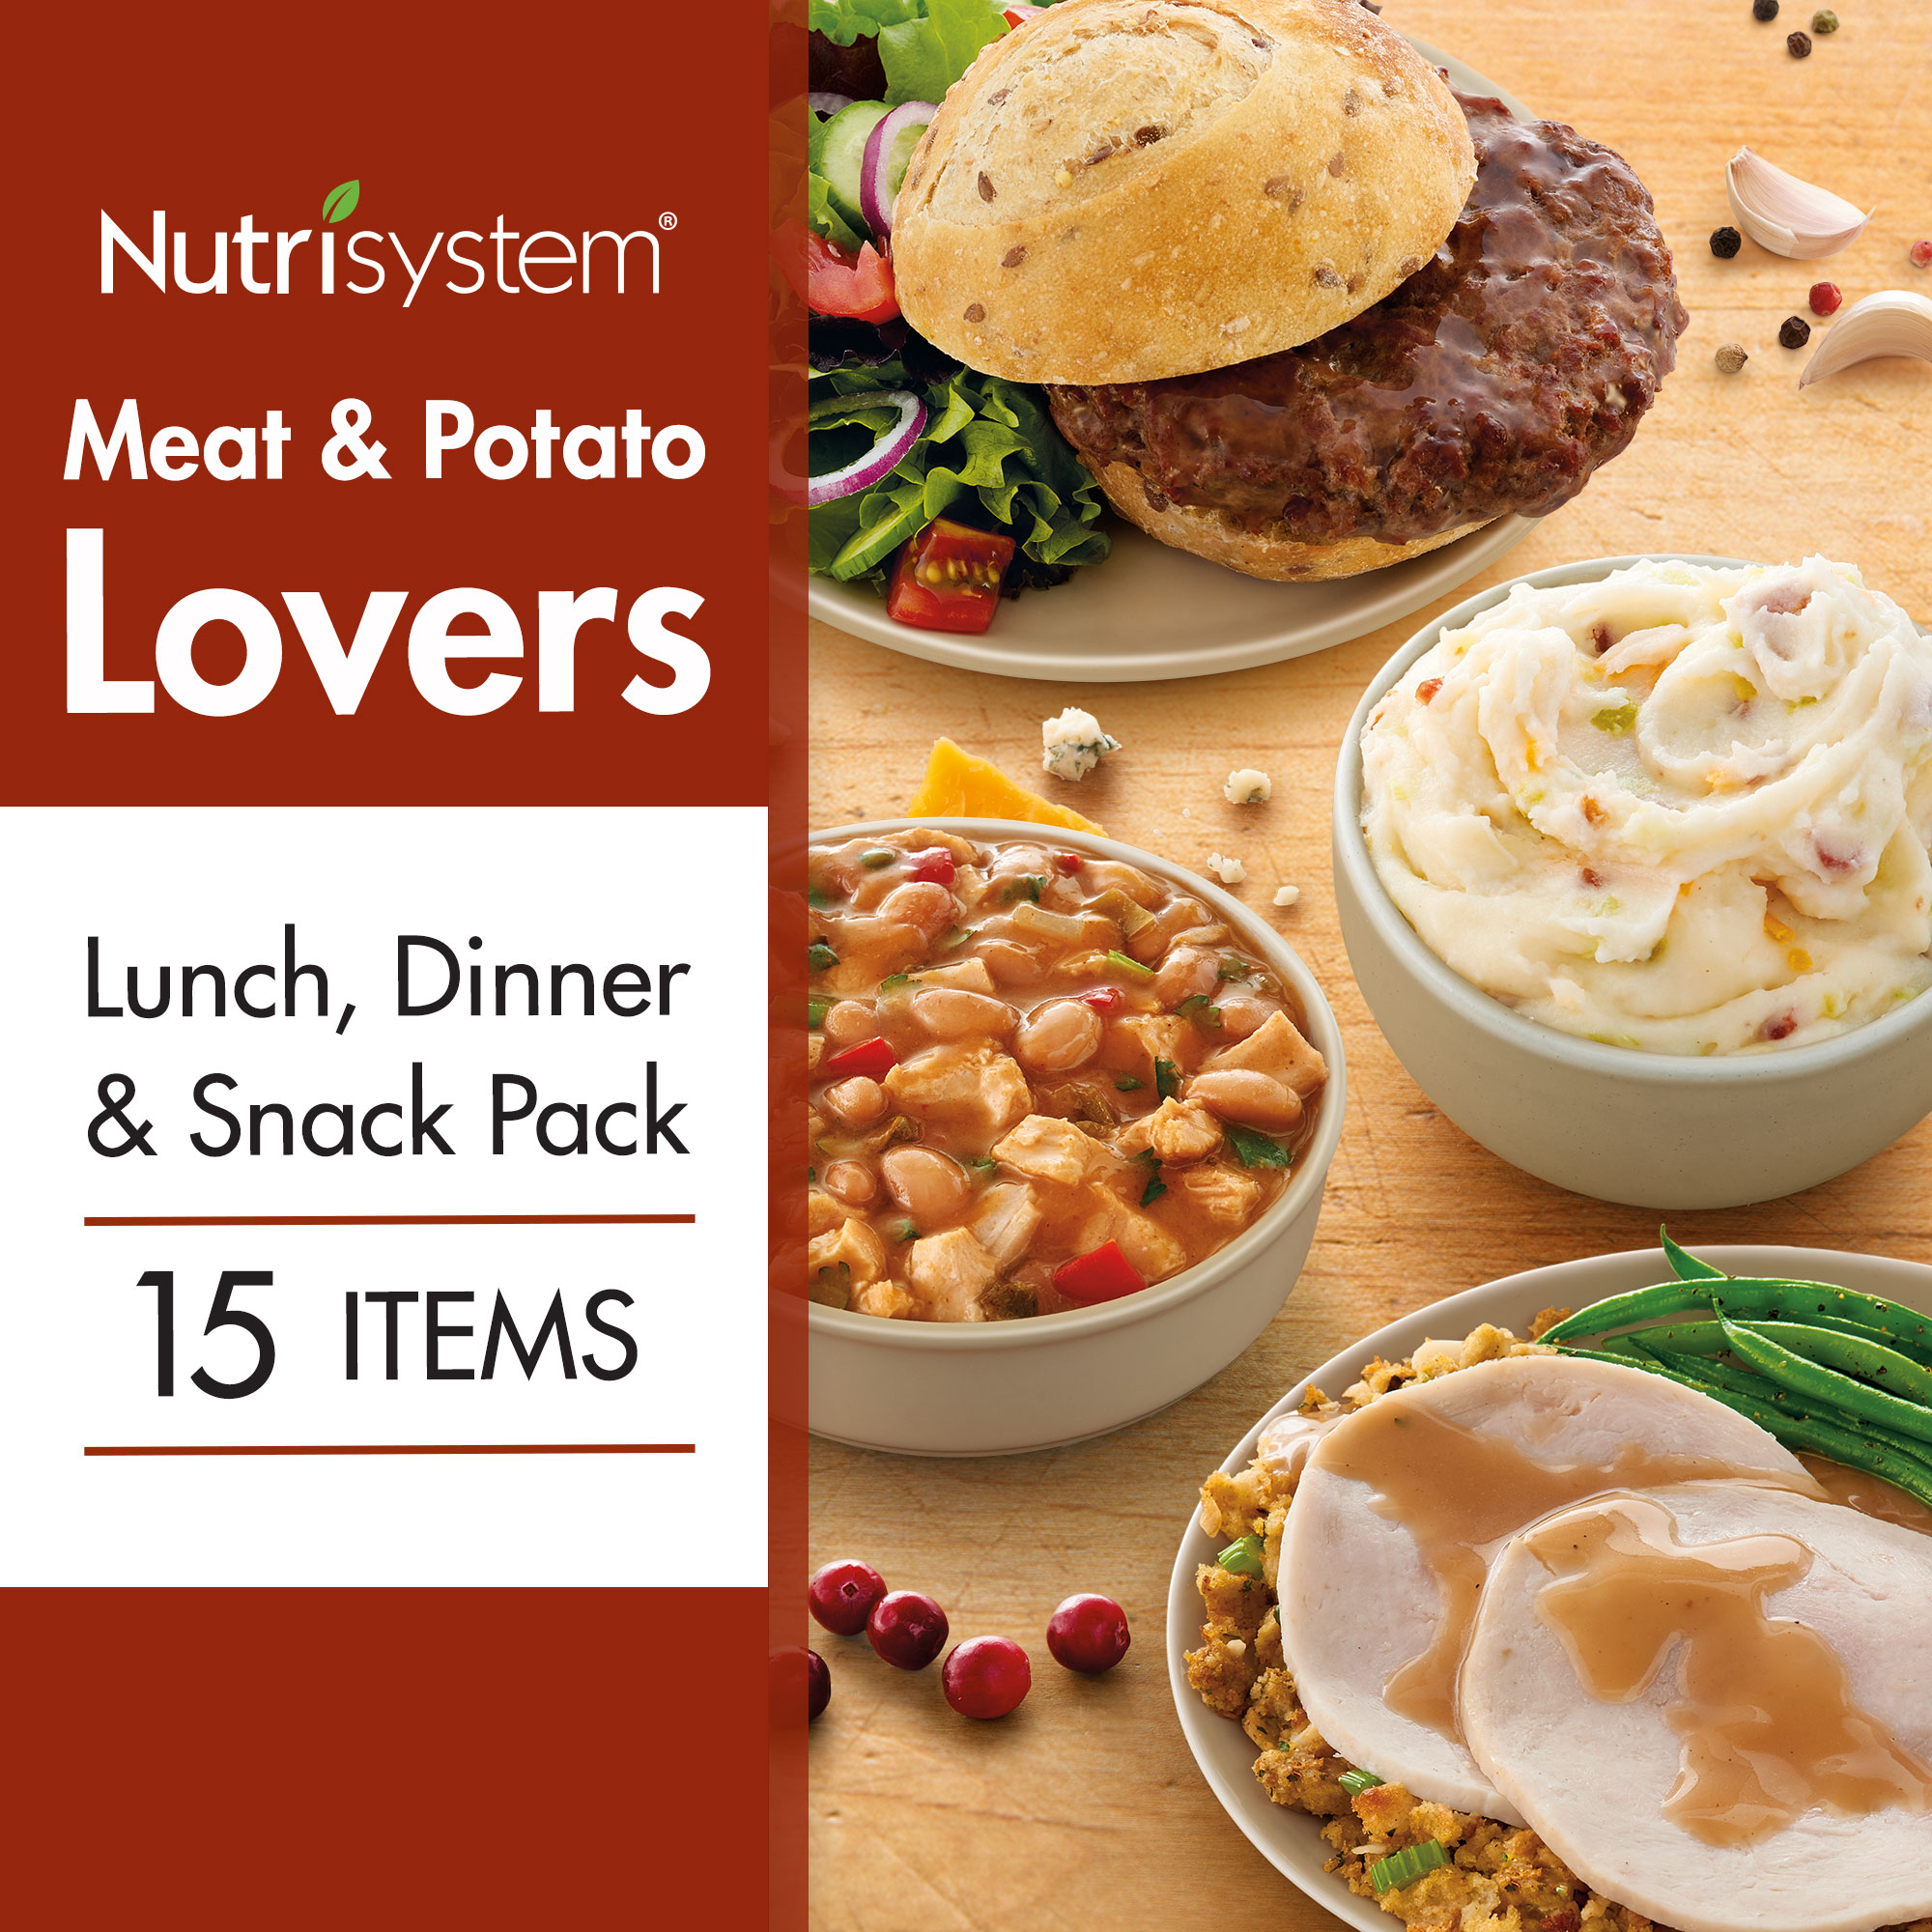 Nutrisystem Meat and Potato Lovers Lunch, Dinner and Snack Variety Pack 15CT